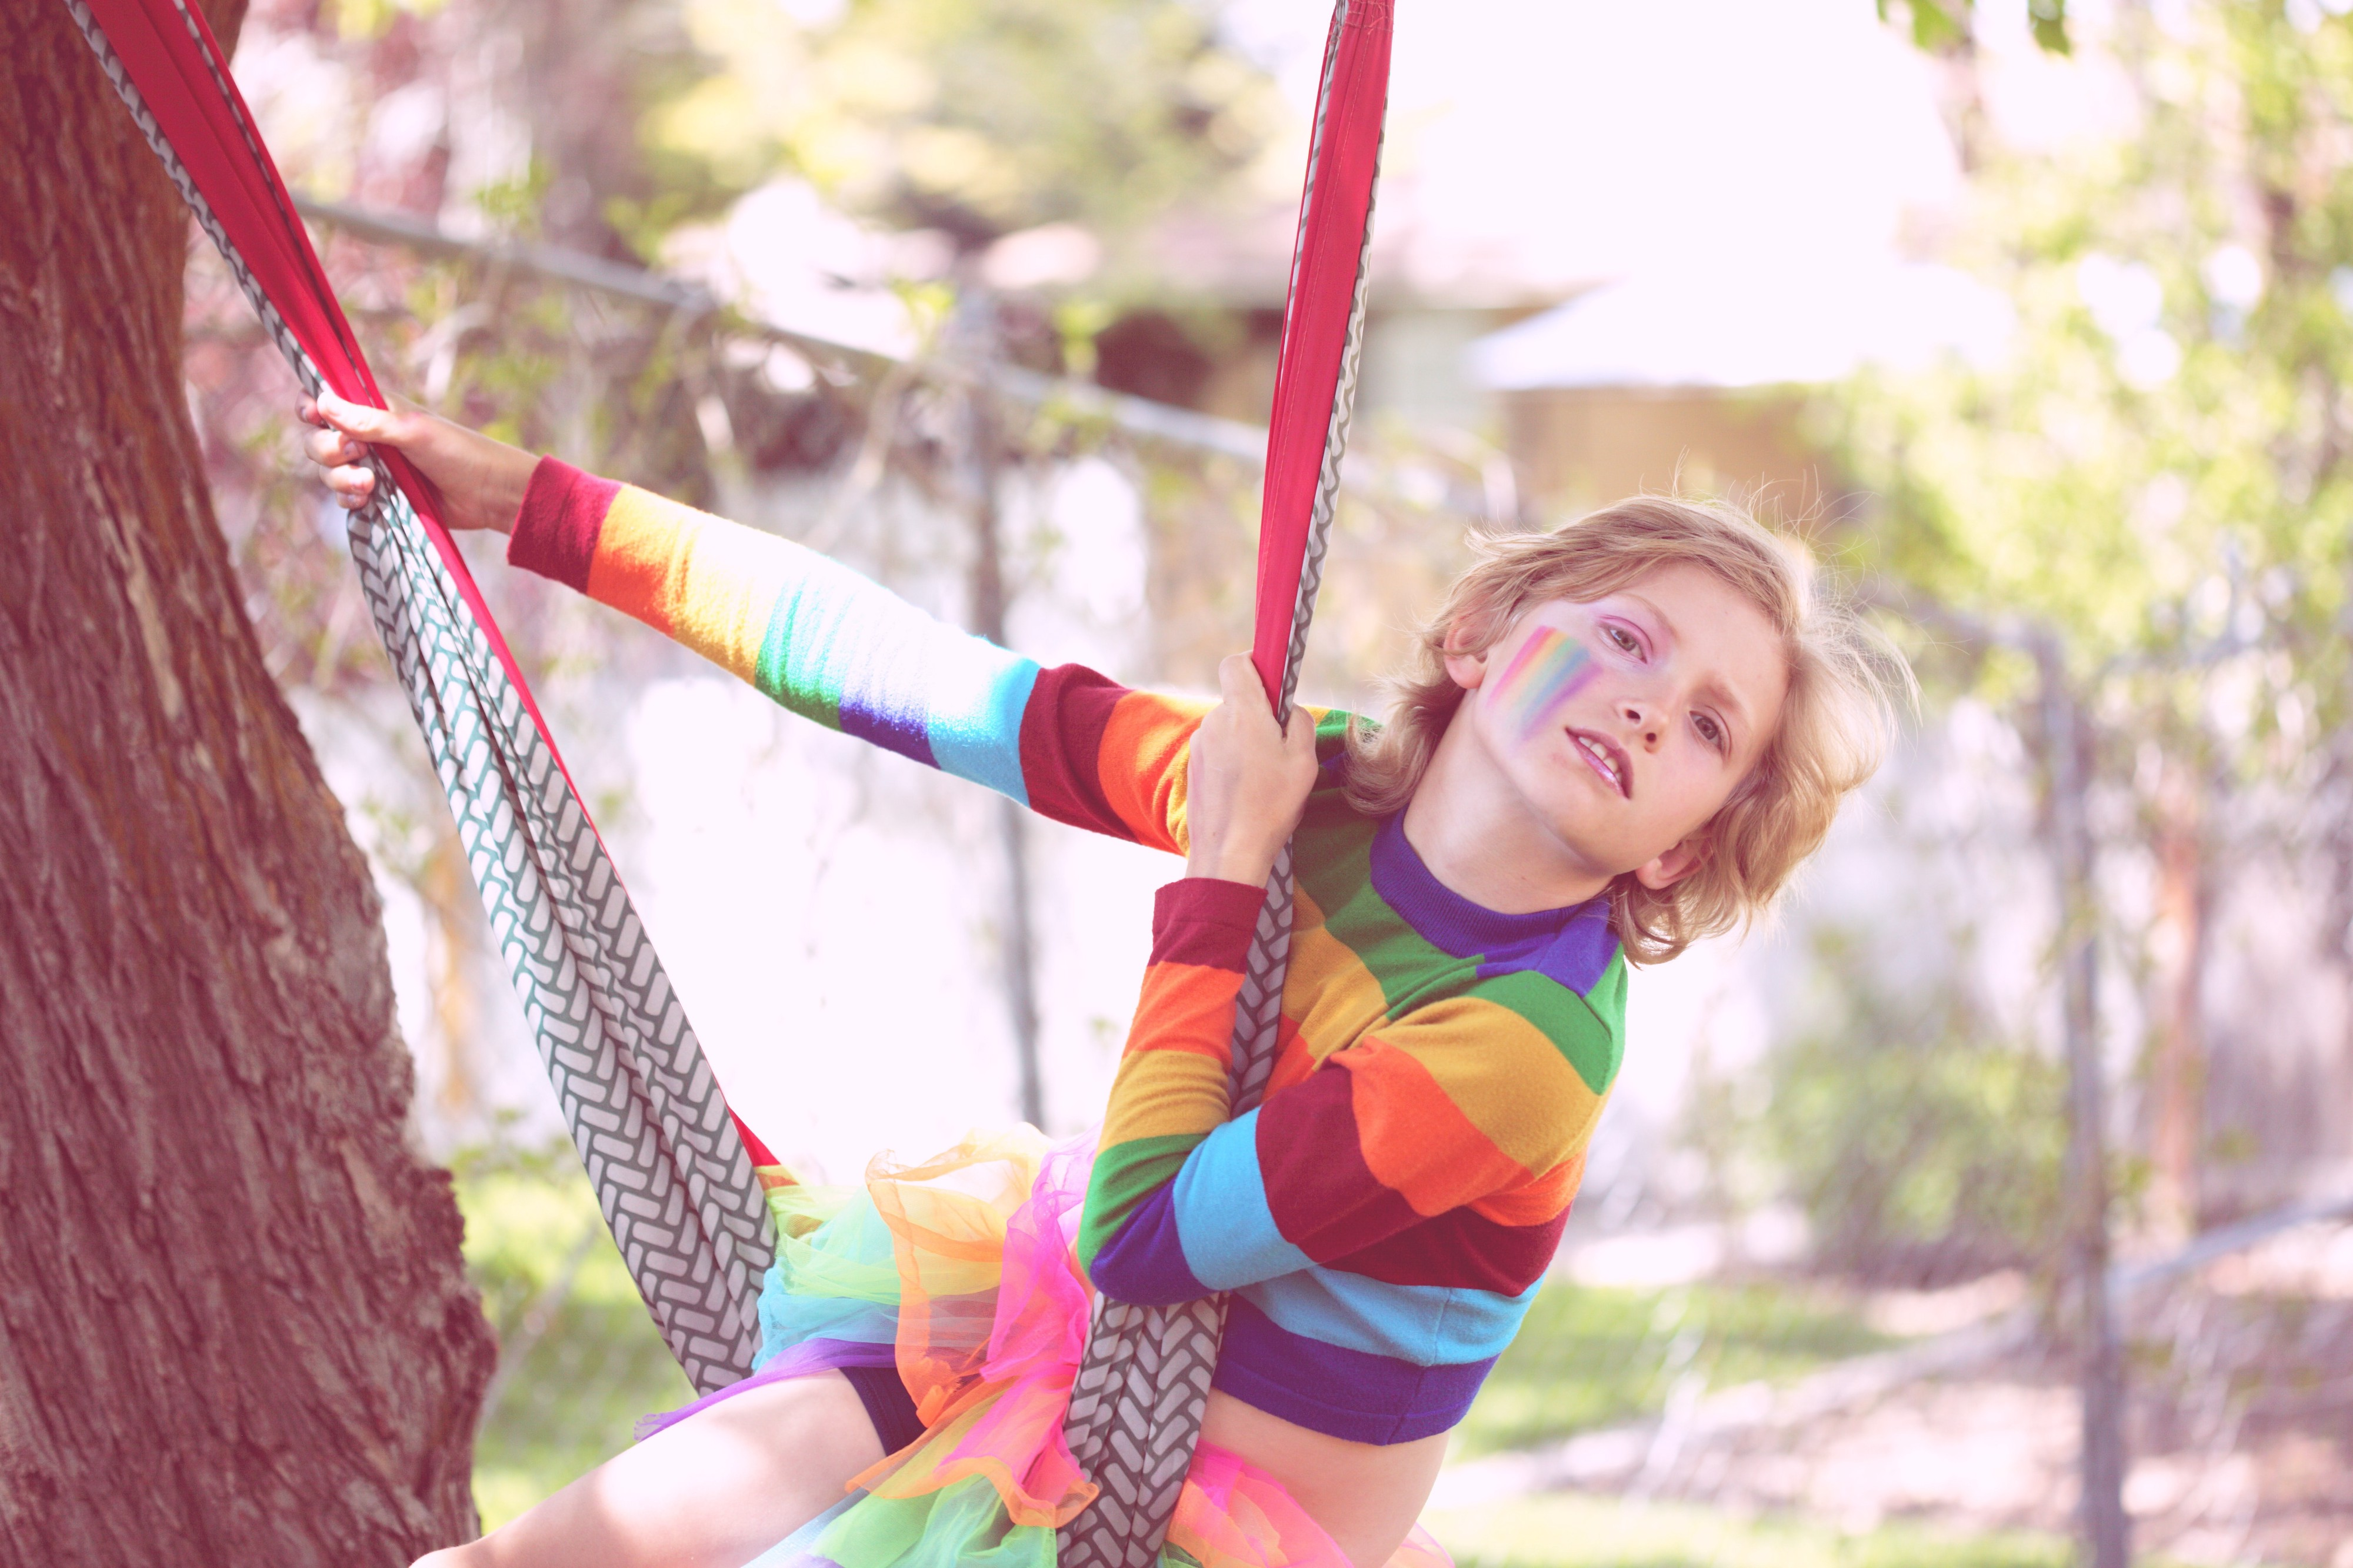 A kid in a rainbow striped sweater and rainbow tutu, with rainbow face paint, plays on a hammock swing outside